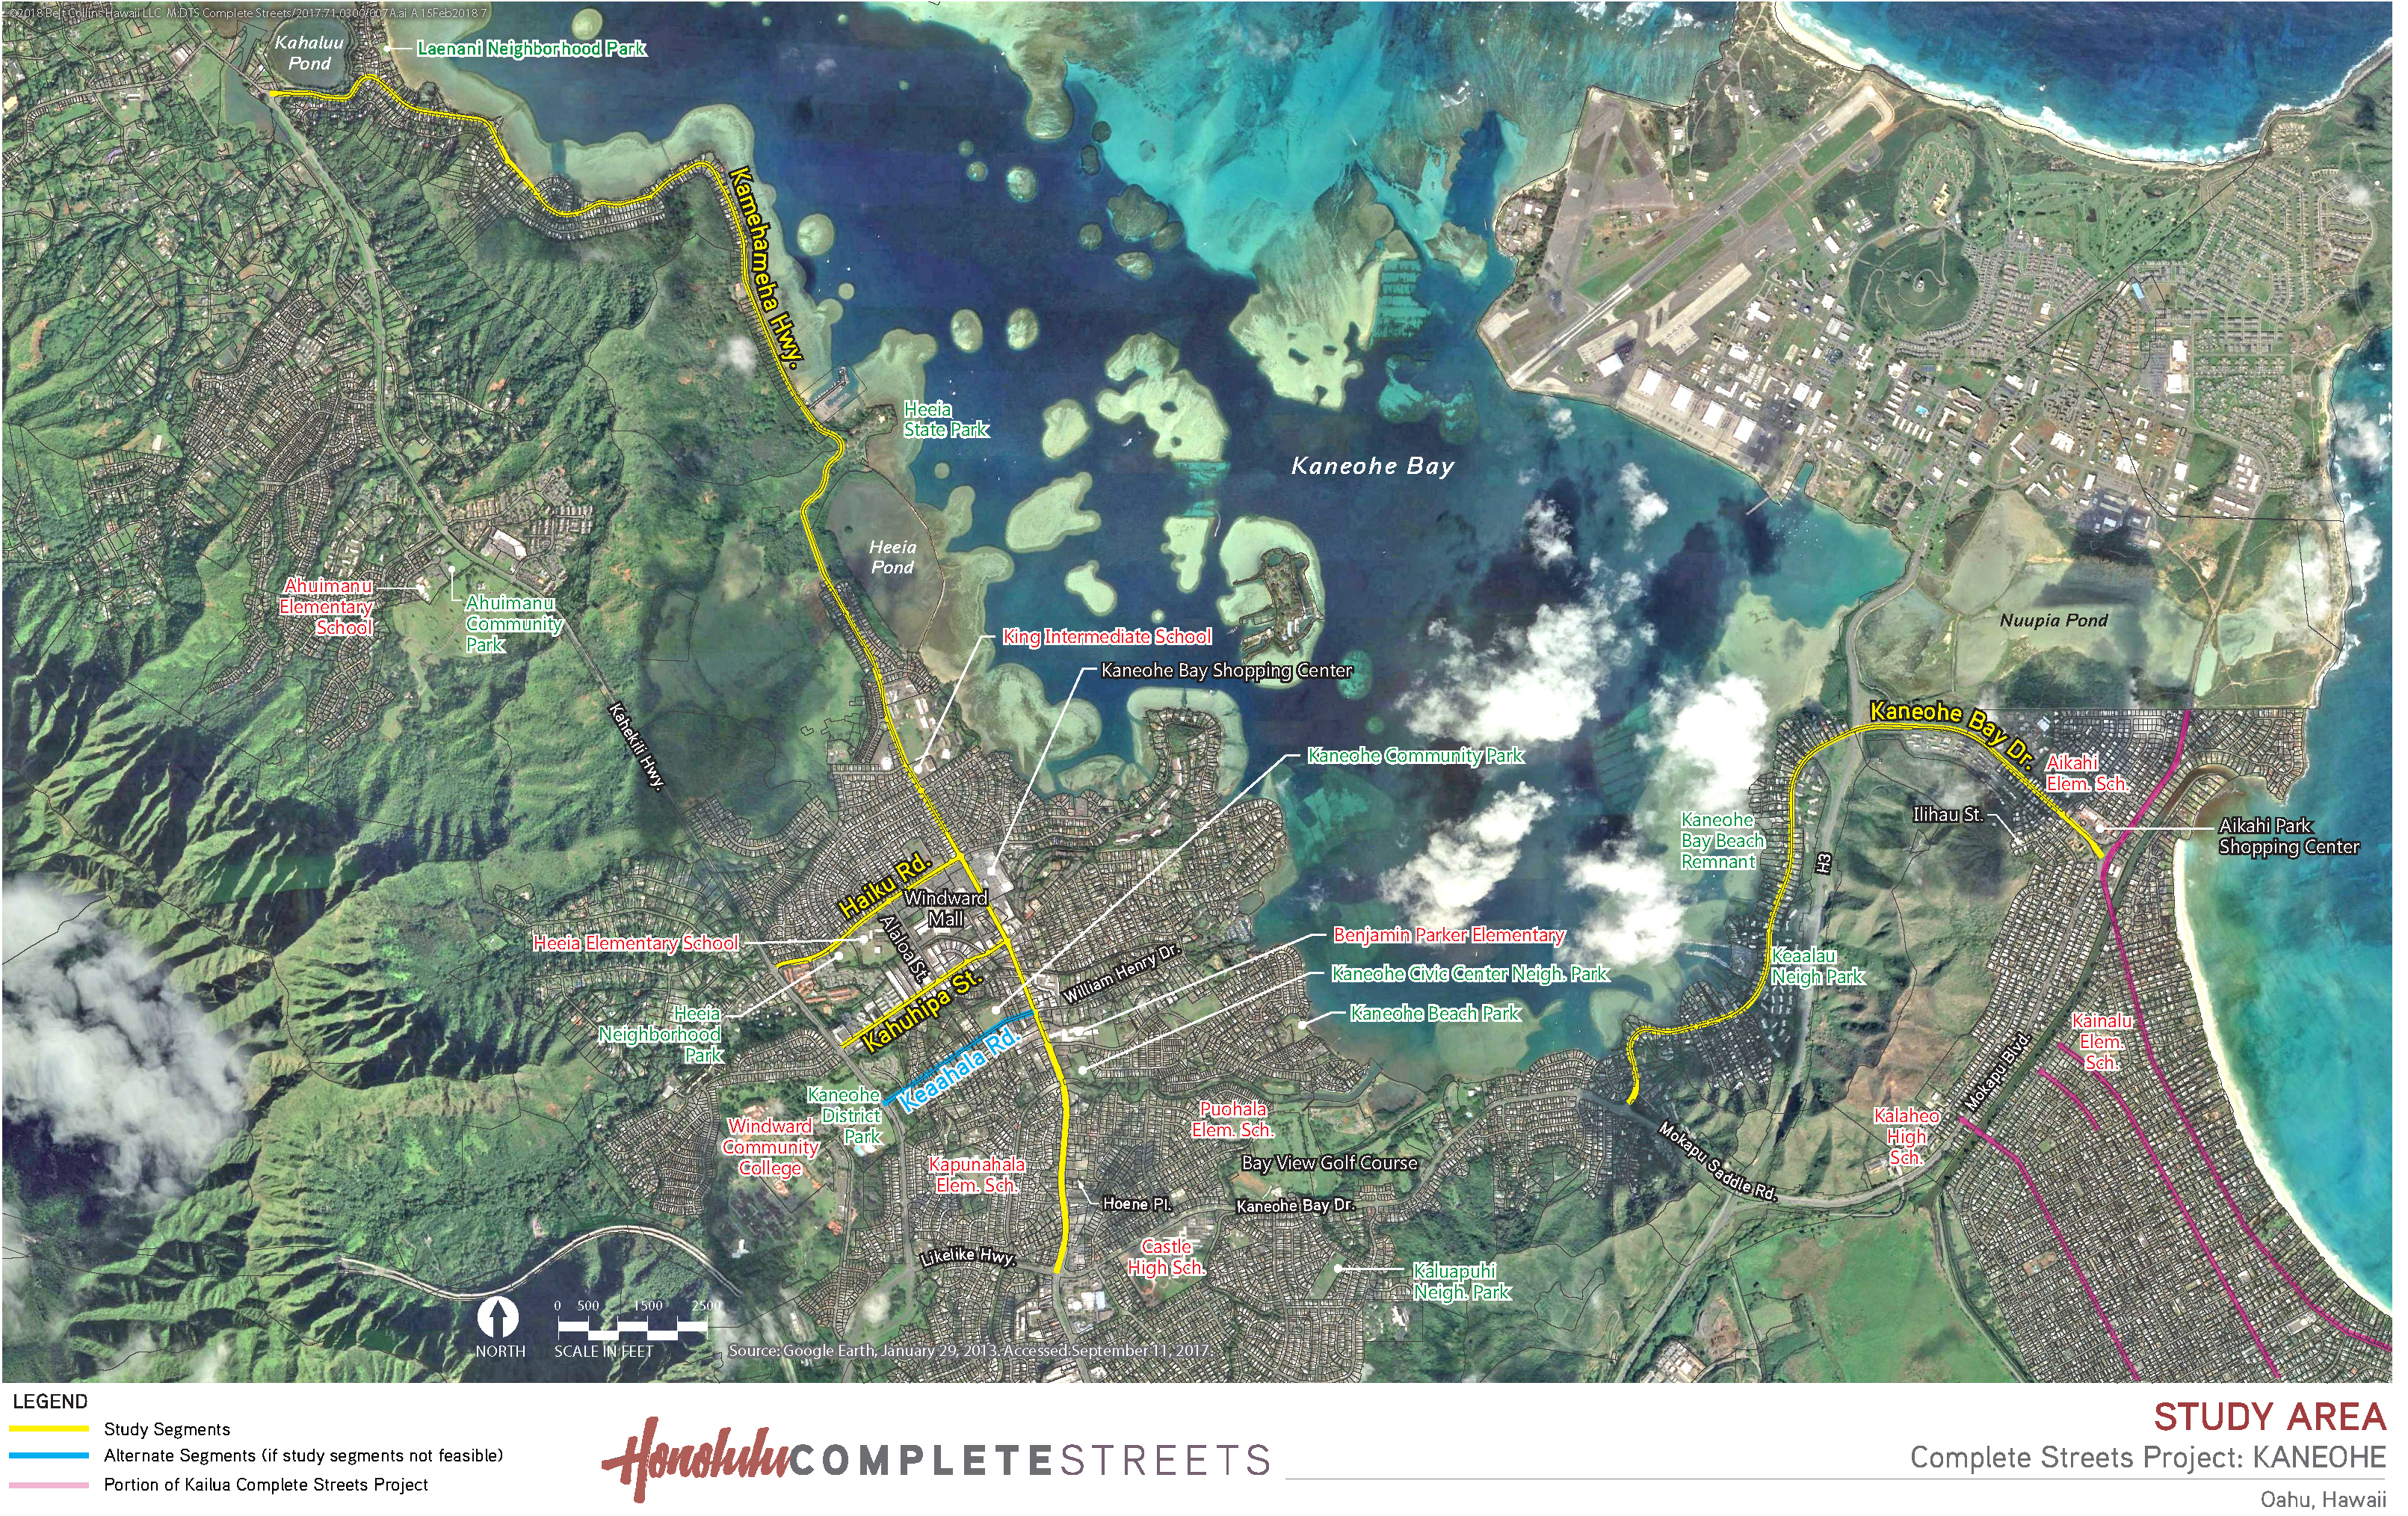 Kaneohe Kaneohe Bay Of Islands Map on map of foster village, map of kalama valley, map of hawaii, map of windward oahu, map of island of oahu, map of haleiwa, map of pali lookout, map of north shore maui, map of hilo, map of kapolei, map of black point, map of wahiawa, map of kailua, map of kewalo basin, map of aiea heights, map of honolulu, map of pauoa valley, map of mililani, map of kahului, map of kapahulu,